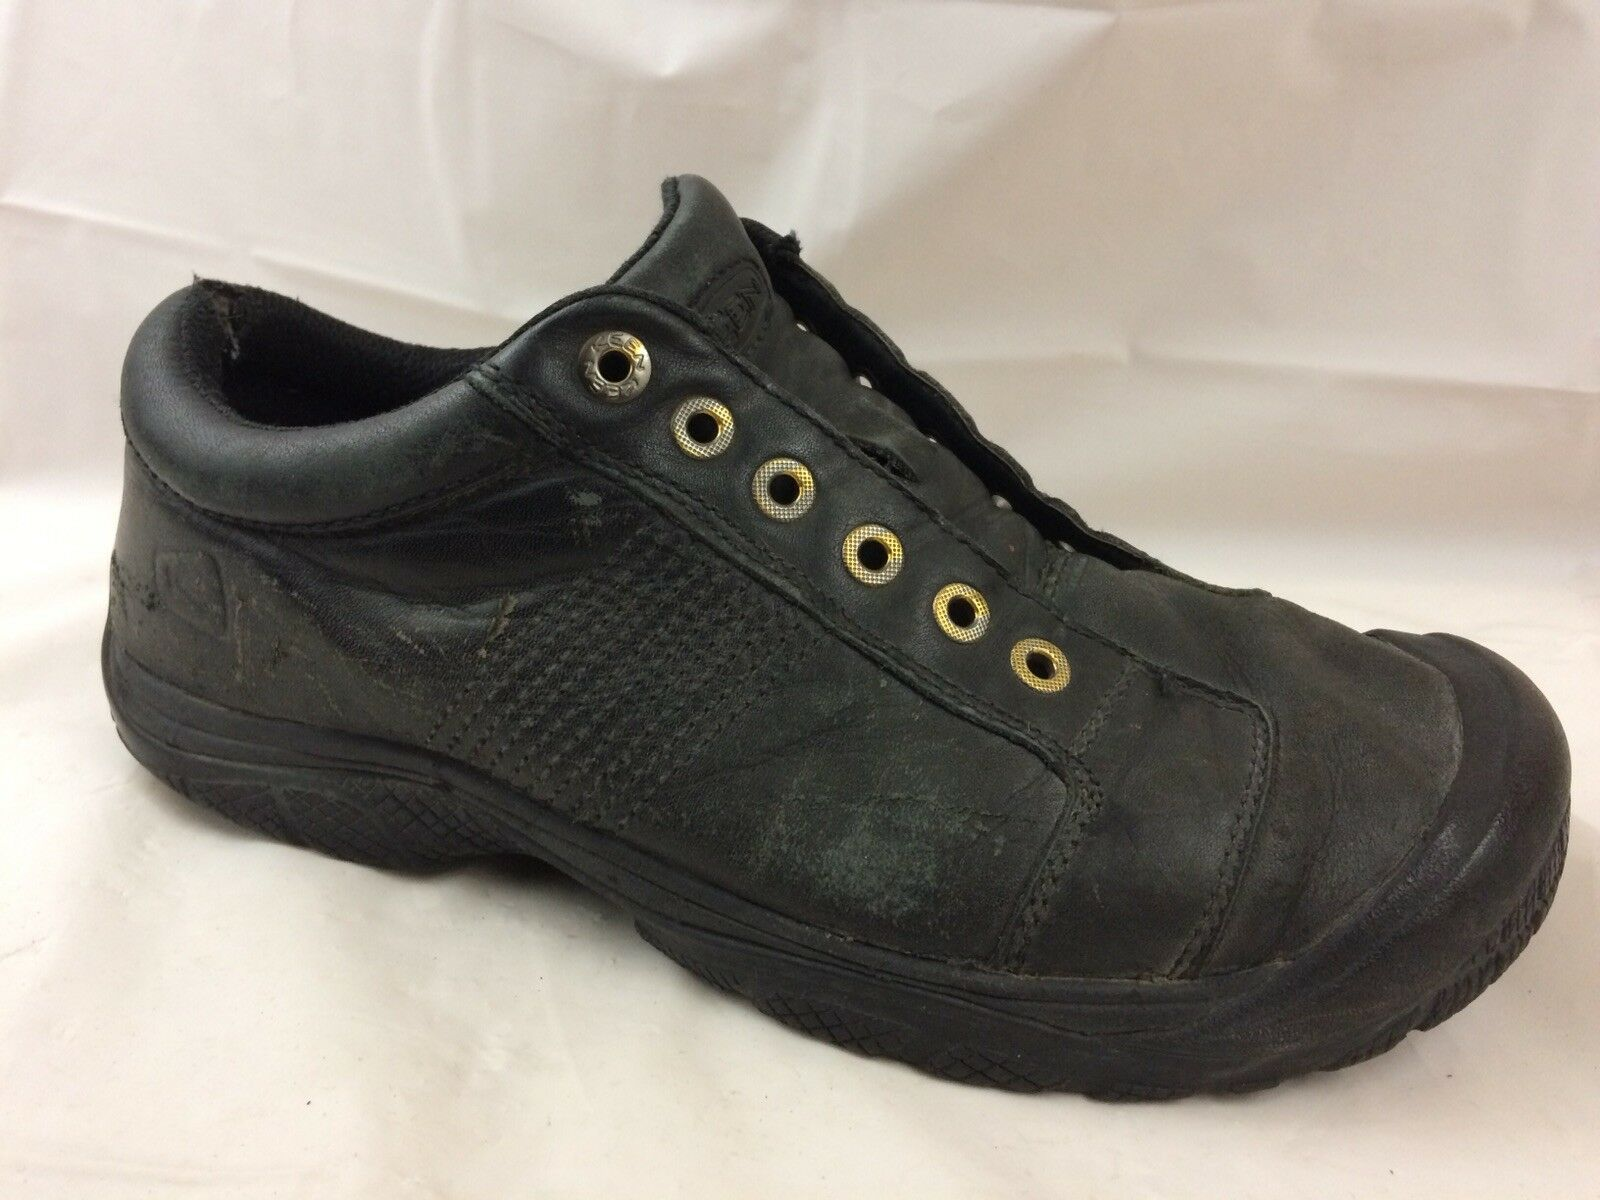 Keen Mens 10.5 M Casual Oxford shoes Work Black Leather Sneaker Non Slip  Marking